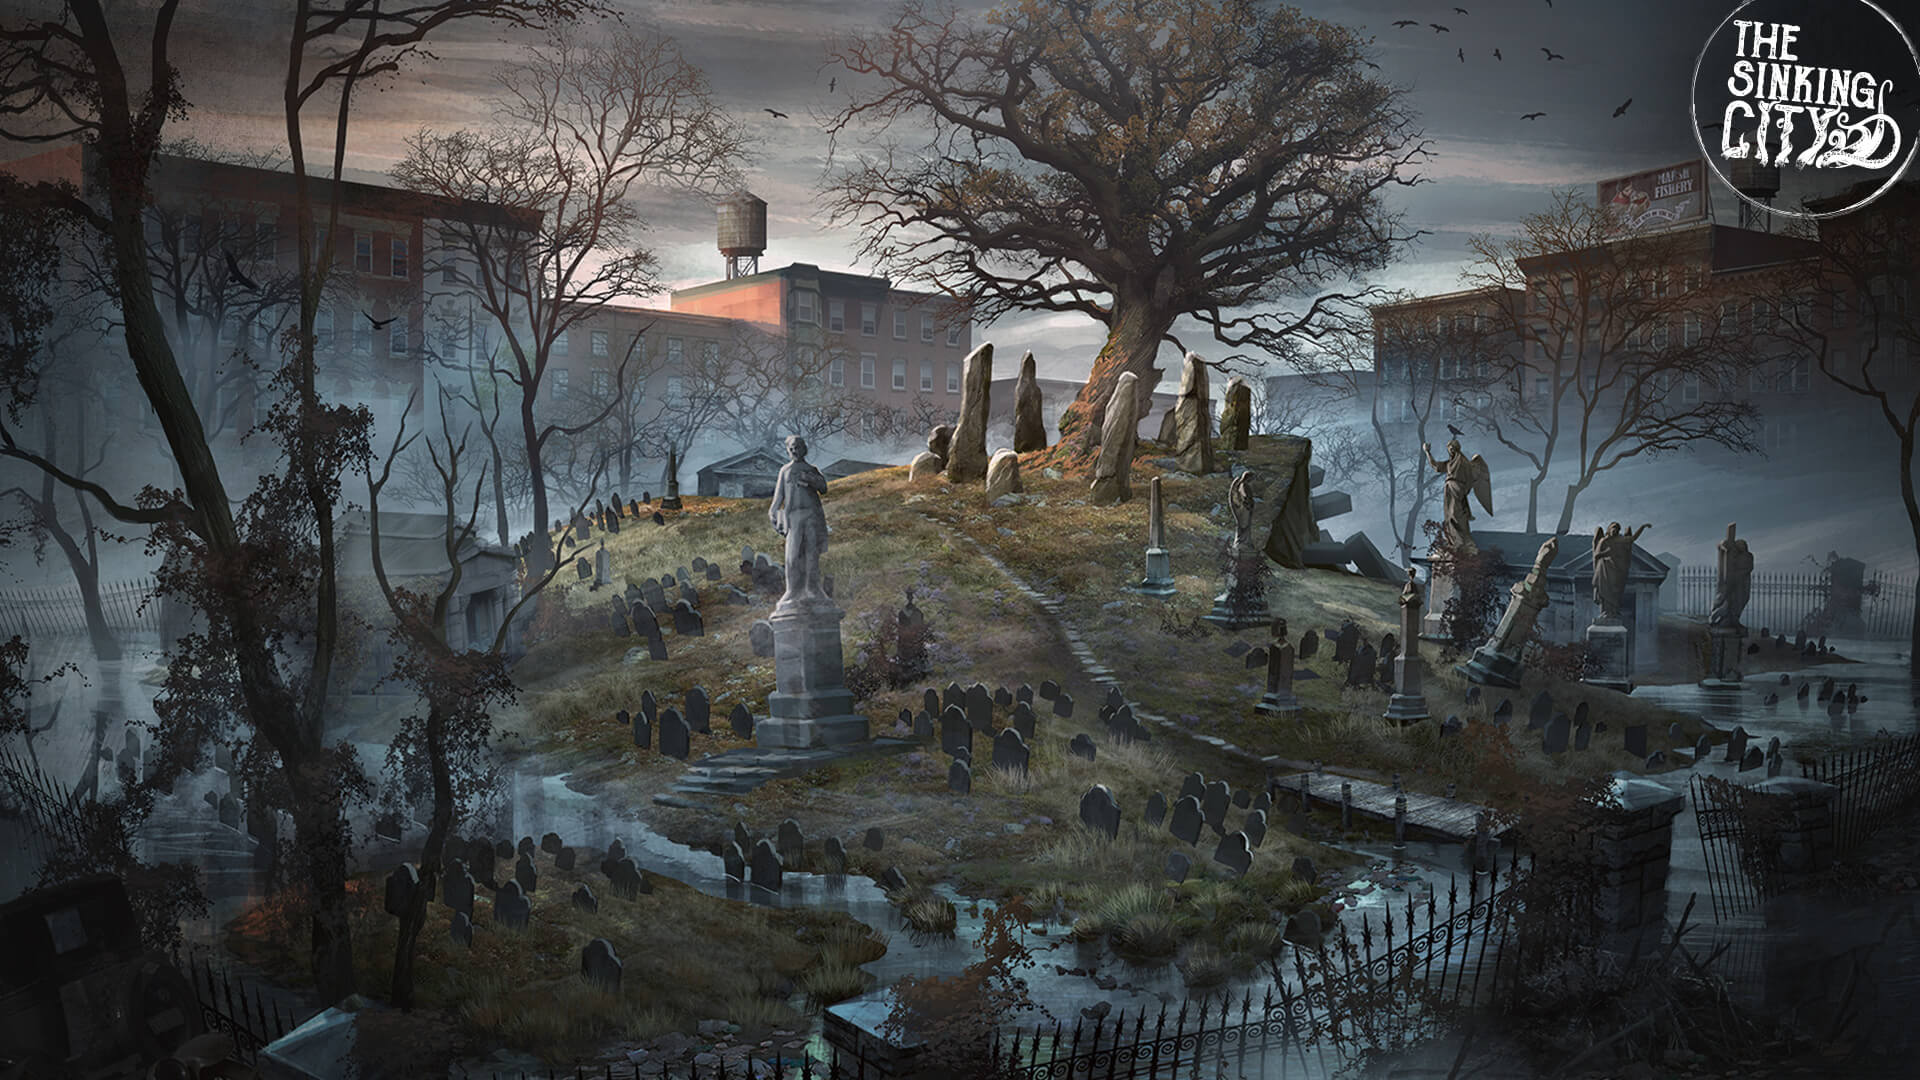 The Sinking City Concept Art of a graveyard leading up to a hill top in the middle of some surrounding buildings. At the top of the hill is a old twisted tree surrounded in a circle by giant narrow stones.